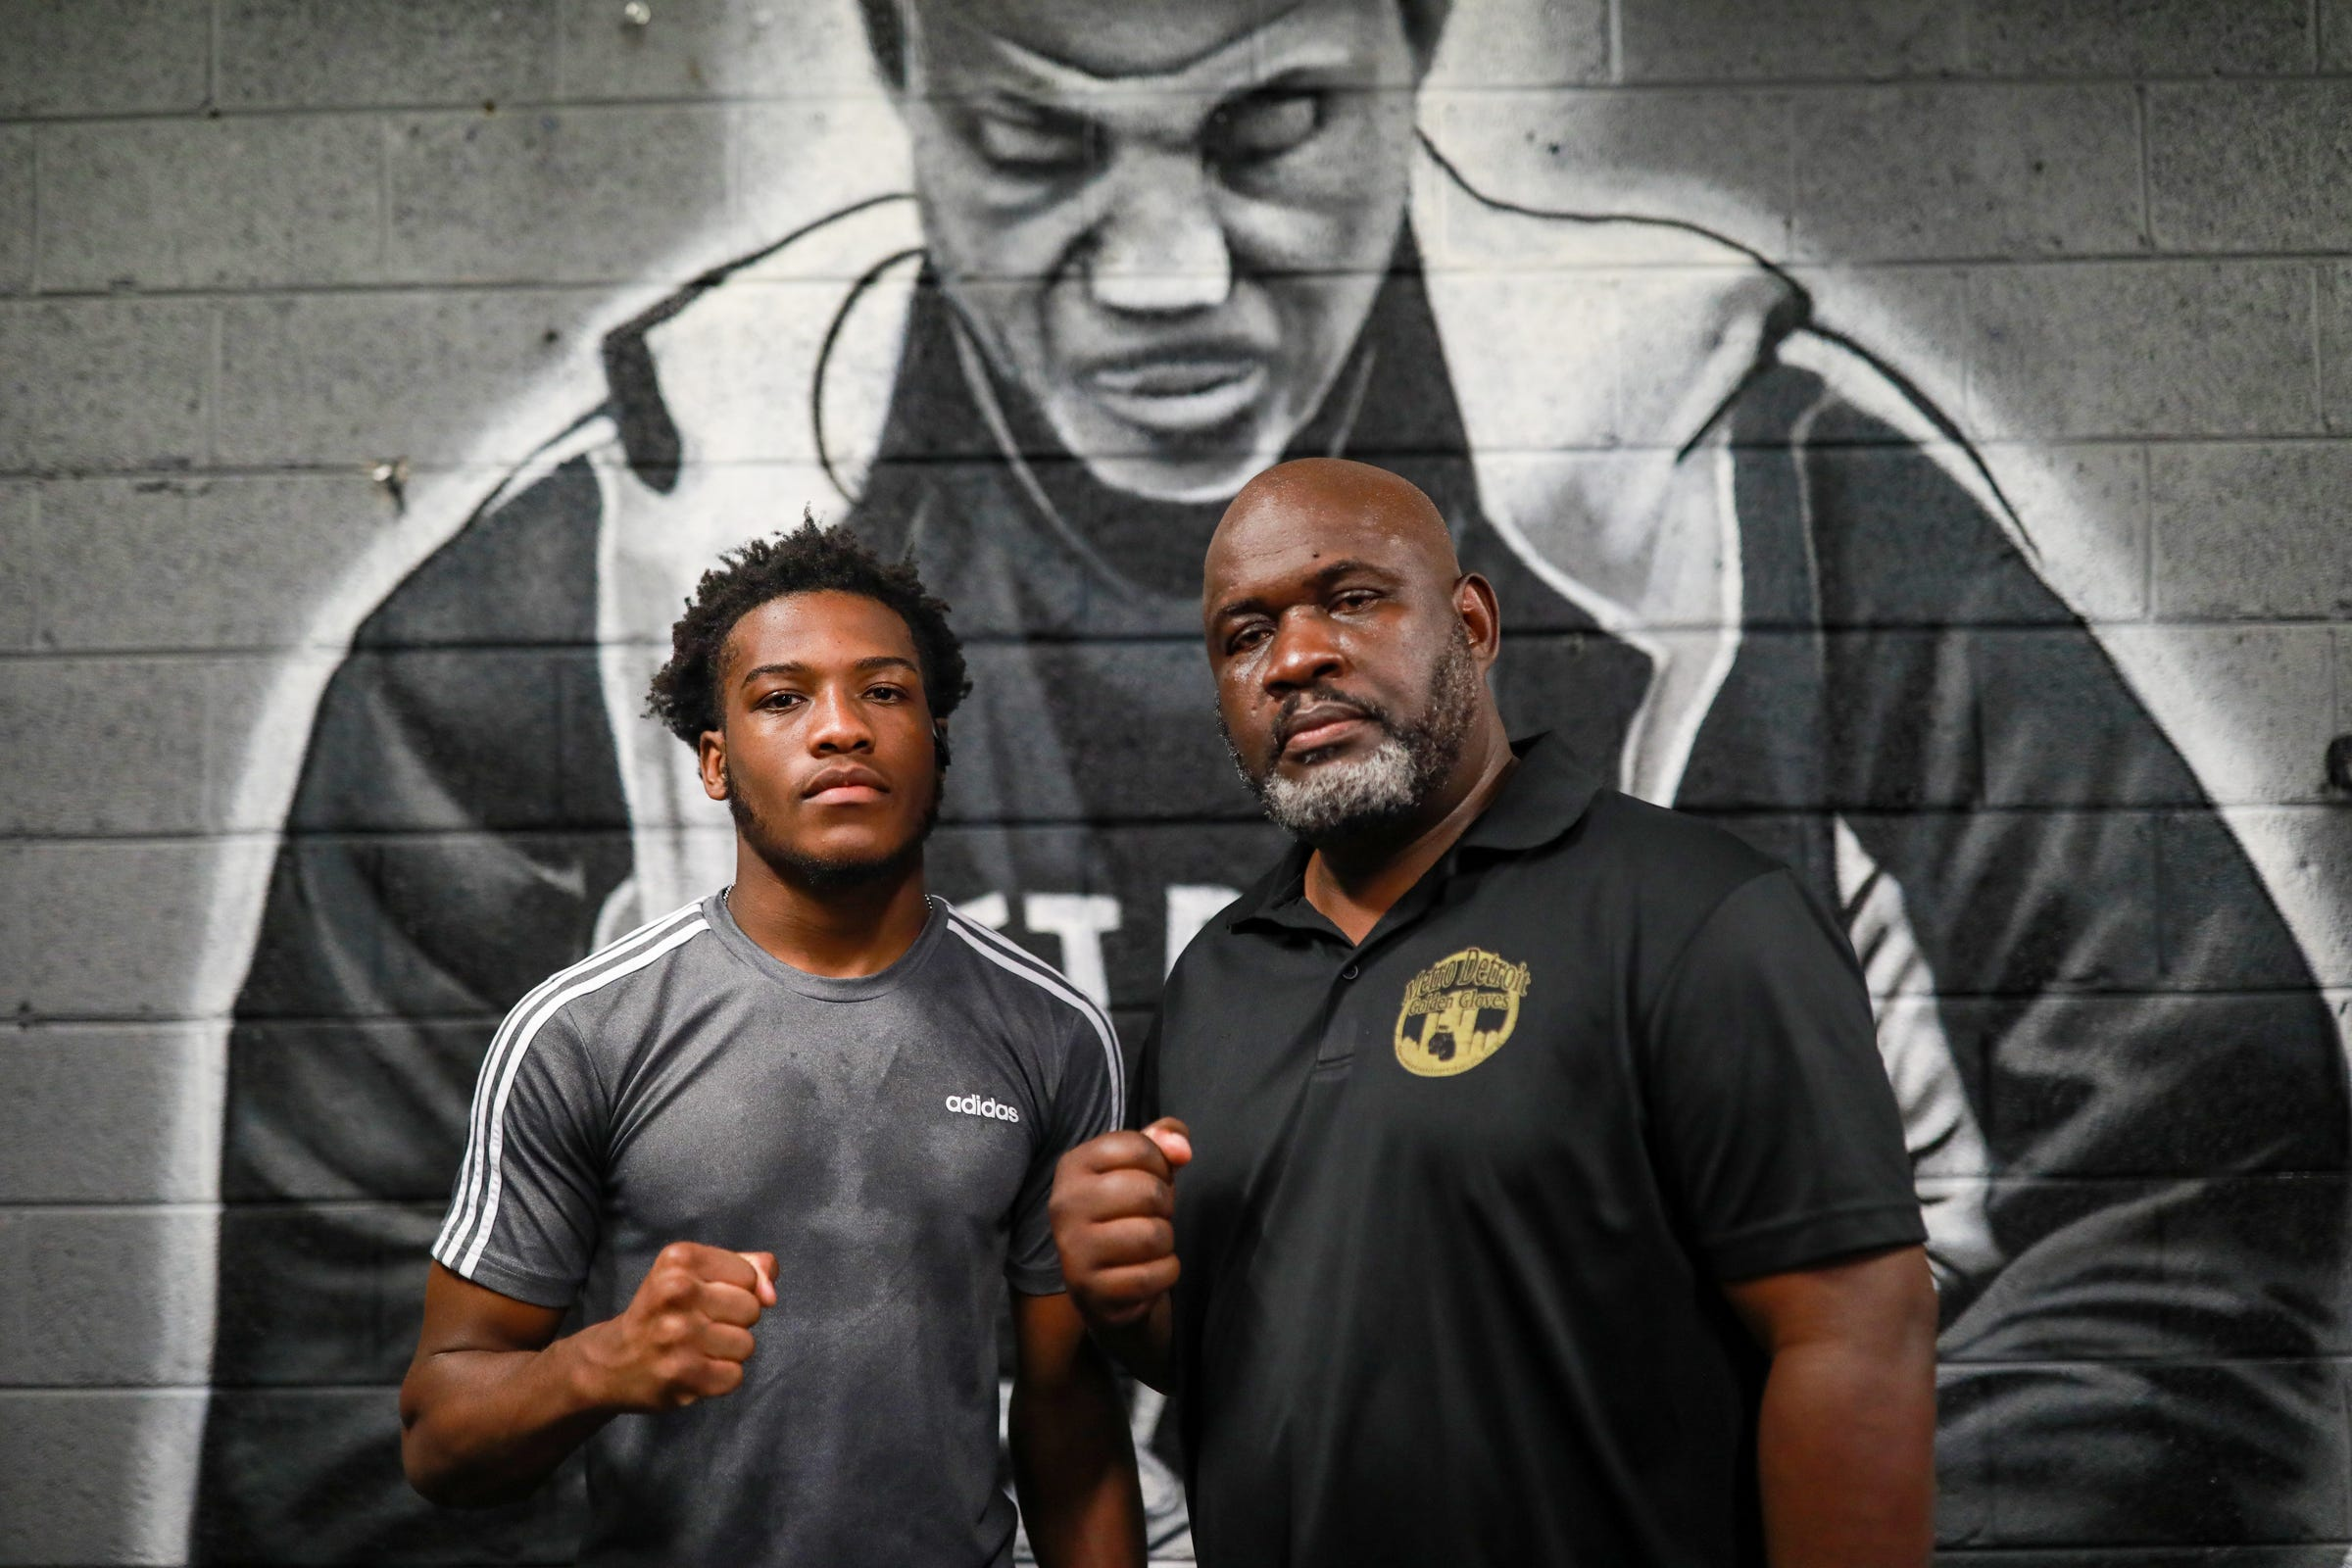 Ansel Stewart poses for a photo with boxer Lance Smith at the SuperBad Boxing Gym in Detroit  on Saturday, June 5, 2021, where boxers spar in preparation for the 2021 Metro Detroit Golden Gloves tournament. Jamaican-born Stewart, a superintendent for the City of Detroit's Department of Transportation (DDOT), has spent most of his adult years helping Detroit youth and young adults through the sport of boxing. His journey of giving back began as a volunteer boxing official and now he runs the Metro Detroit Golden Gloves, a nonprofit which puts on an annual amateur tournament in Detroit that will take place in July.